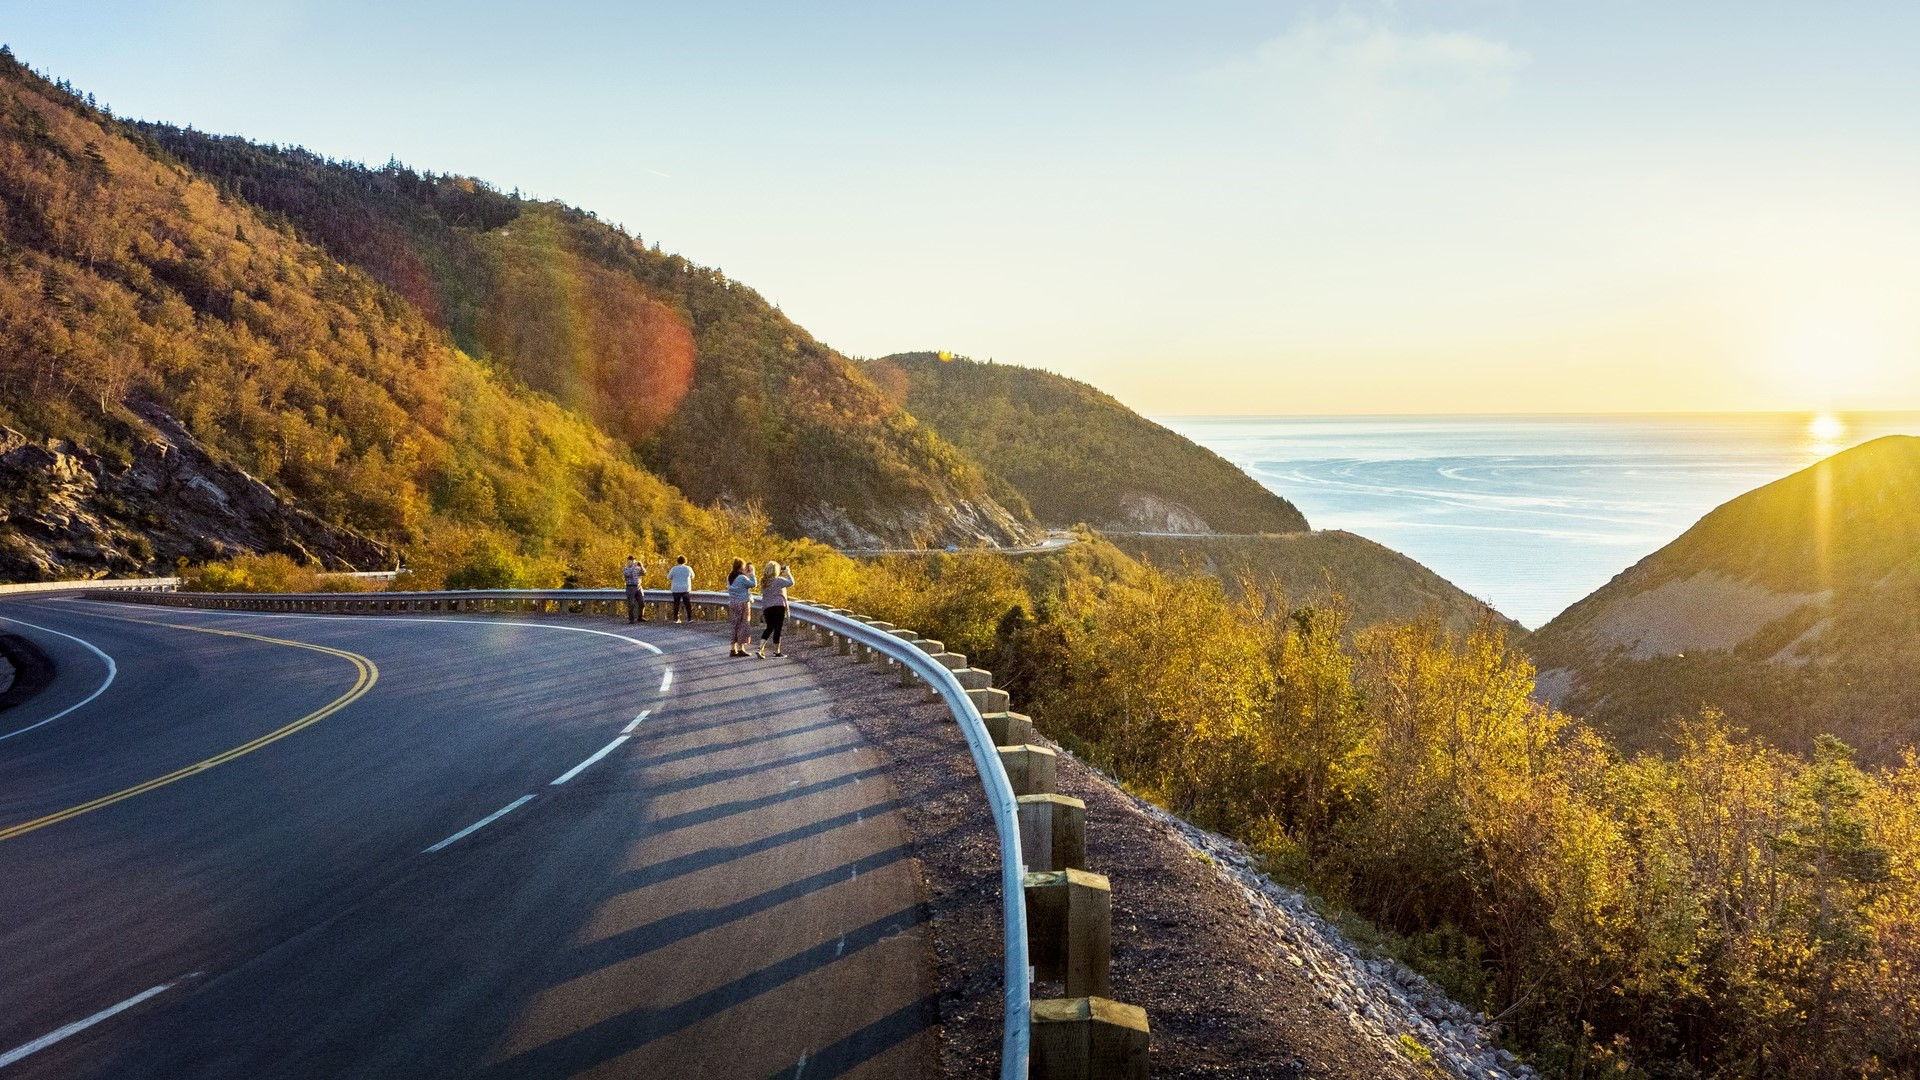 Top 10 Most Beautiful Roads In The World - Instagram